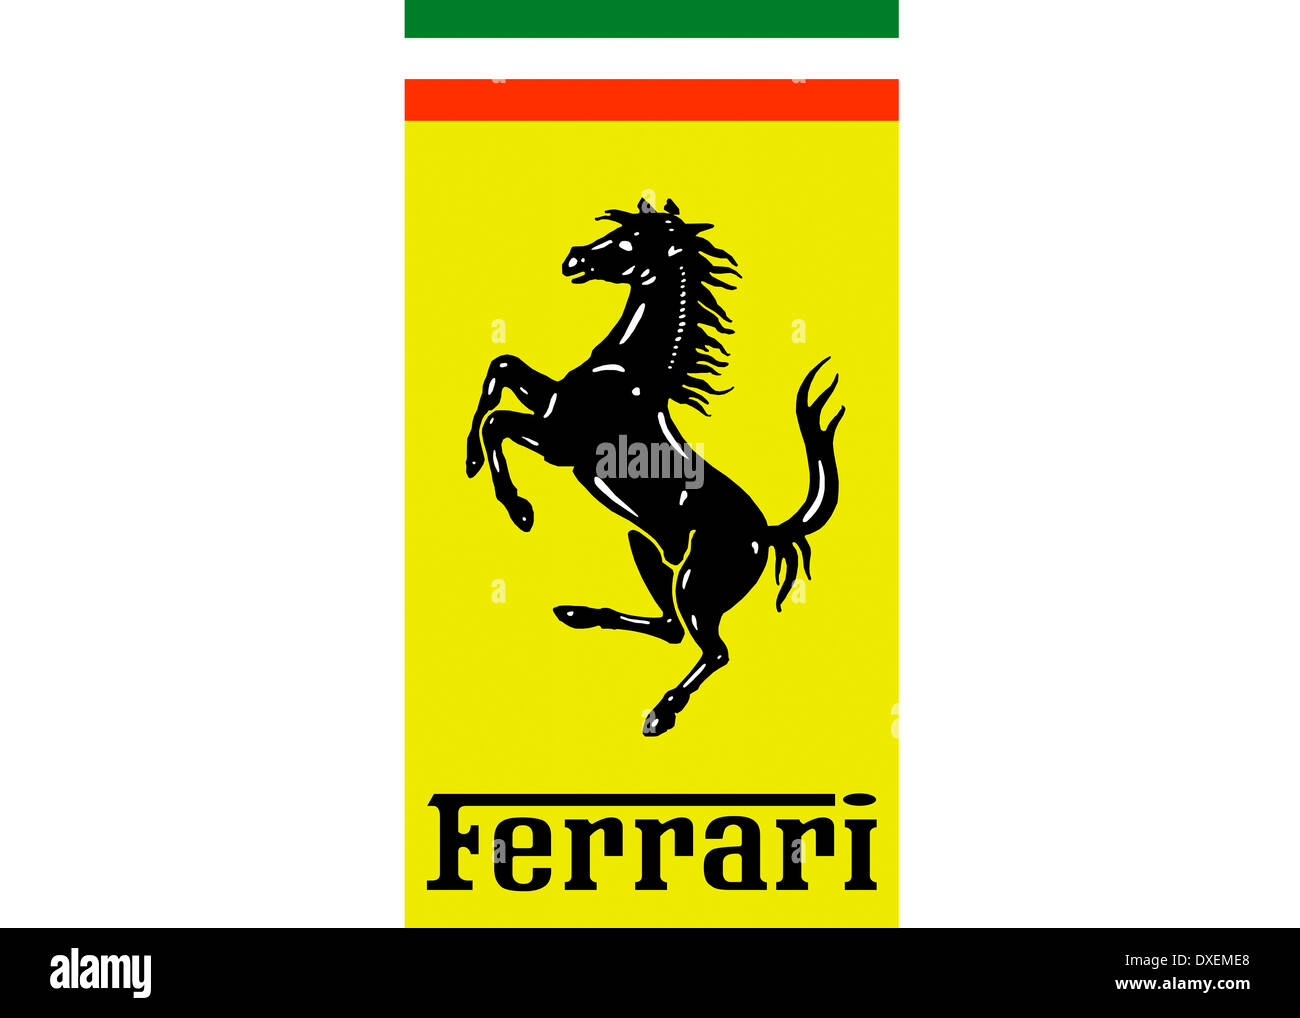 Ferrari logo flag symbol icon stock photos ferrari logo flag ferrari logo flag symbol icon emblem stock image buycottarizona Choice Image